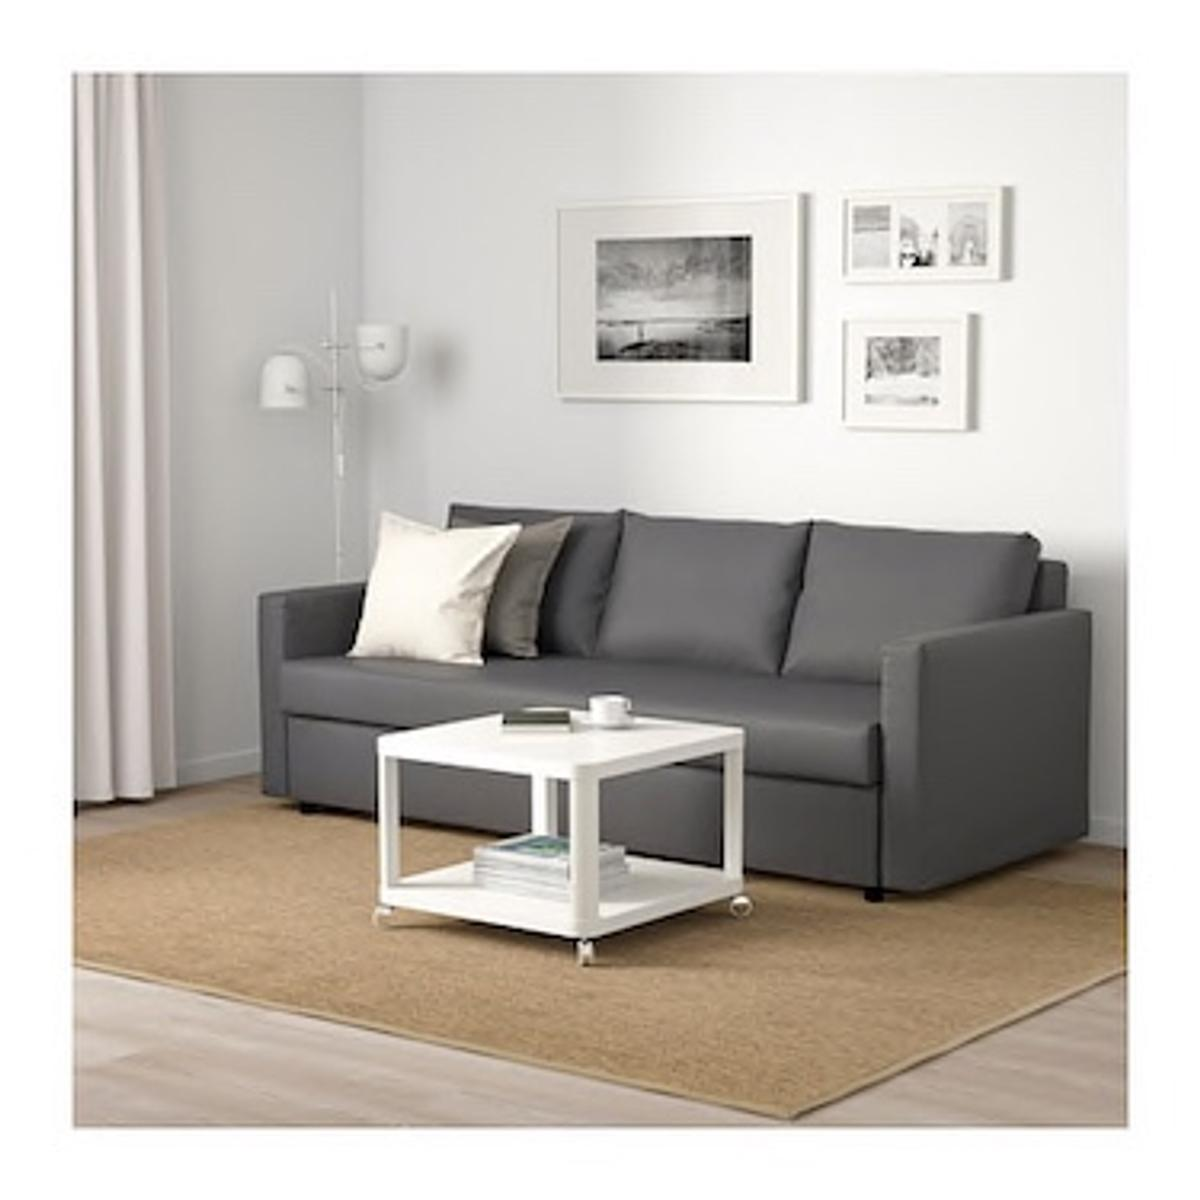 Sensational Ikea Sofa Bed In Rh11 Crawley Fur 290 00 Zum Verkauf Gmtry Best Dining Table And Chair Ideas Images Gmtryco